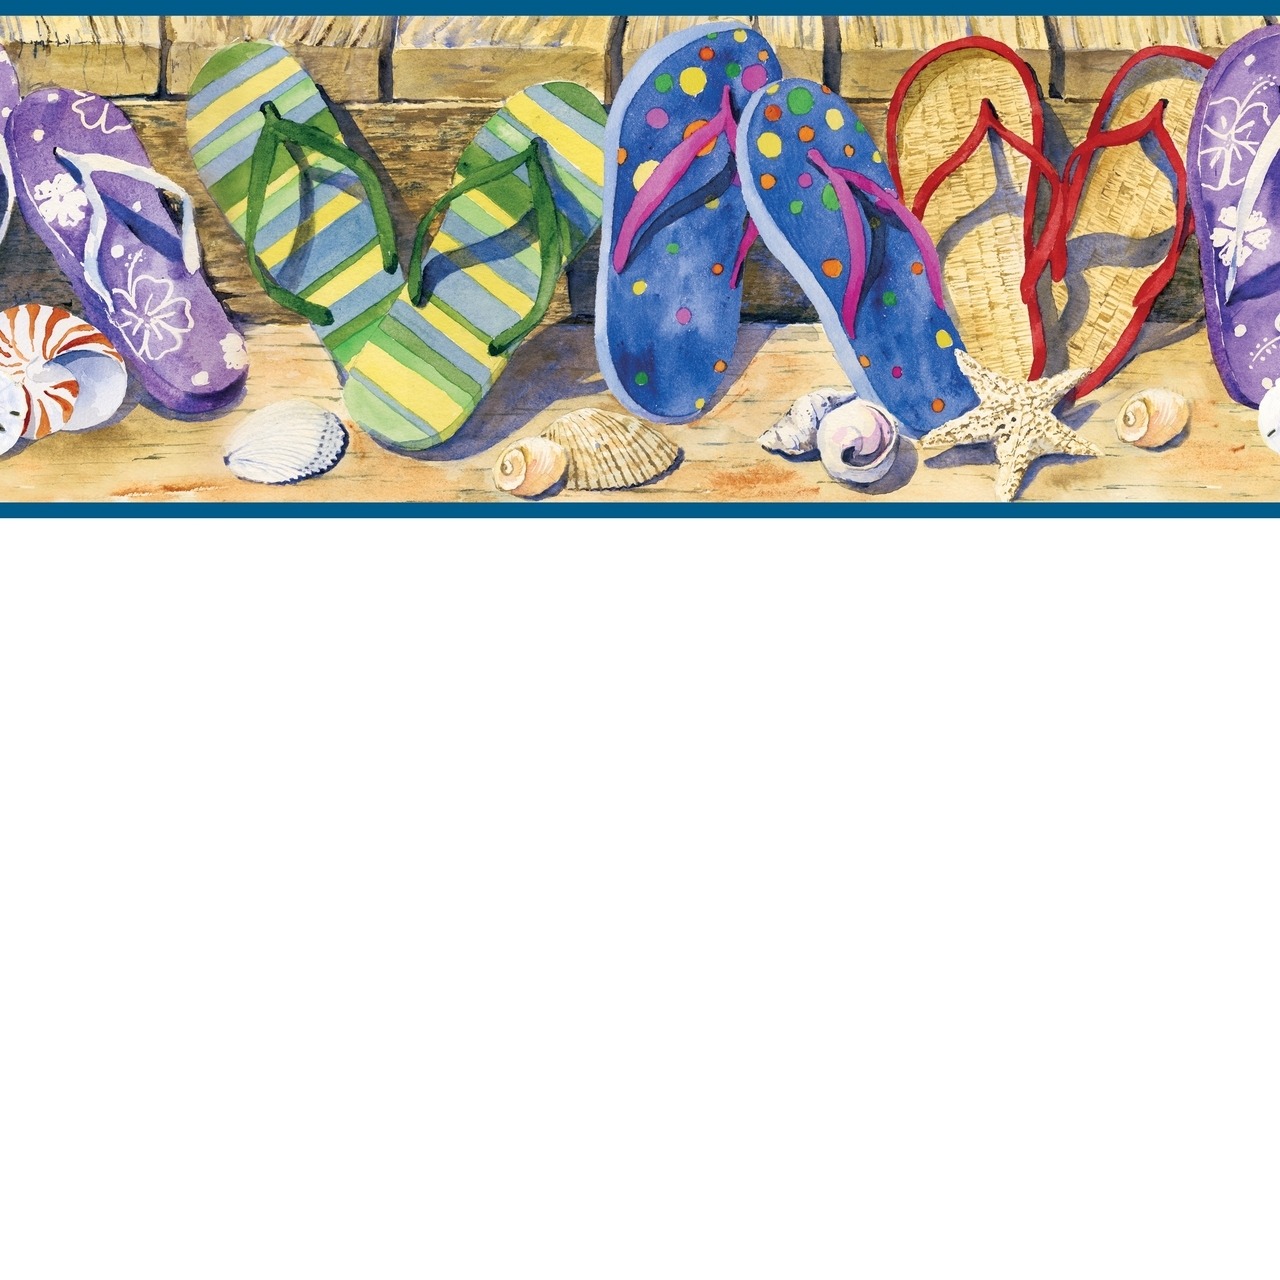 http-www-papermywalls-com-borders-by-chesapeake-flipflops-beach-sandals-bor-wallpaper-wp4403648